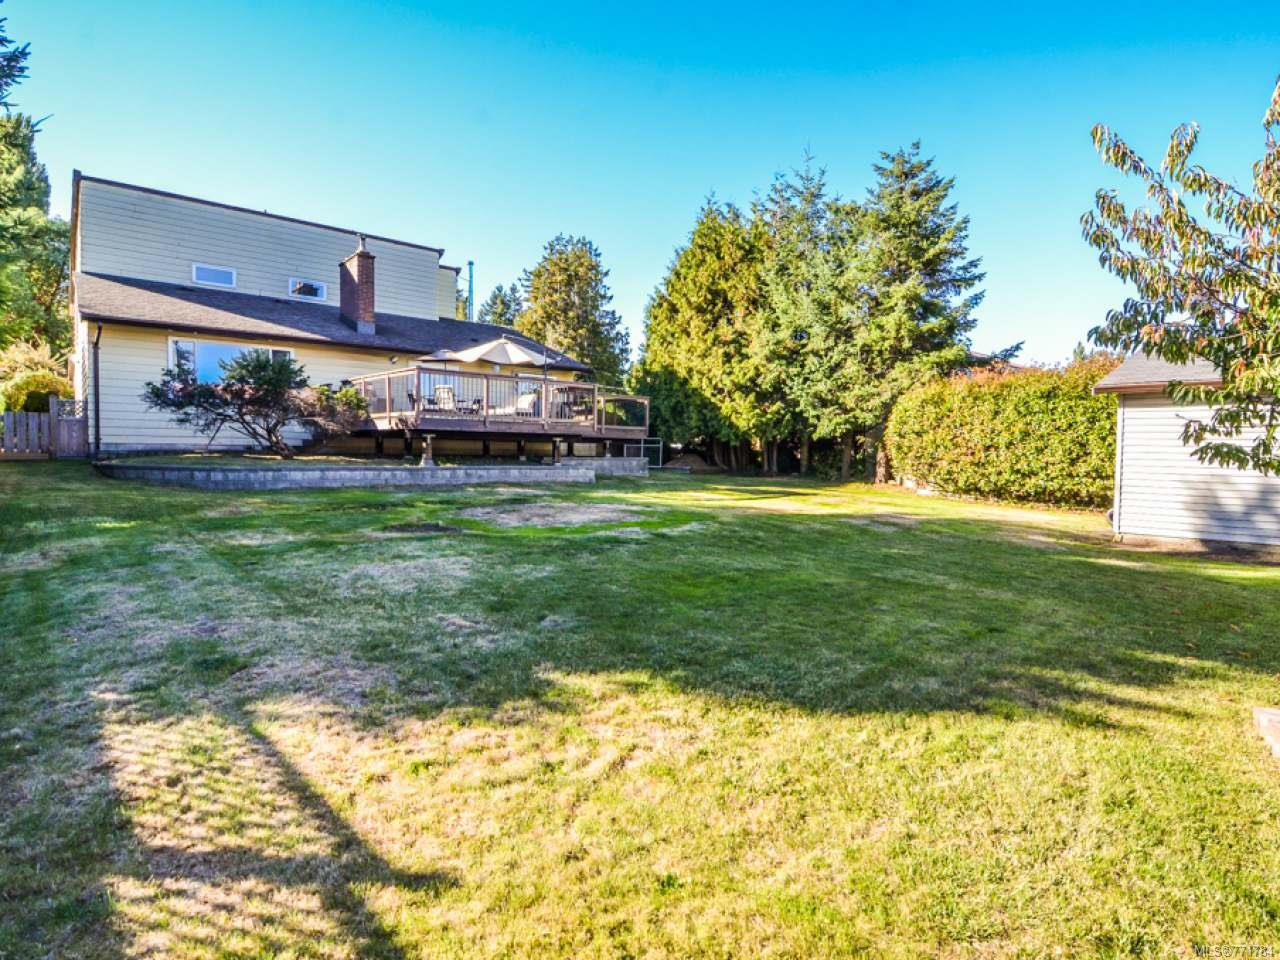 Photo 5: Photos: 3974 Dillman Rd in CAMPBELL RIVER: CR Campbell River South House for sale (Campbell River)  : MLS®# 771784